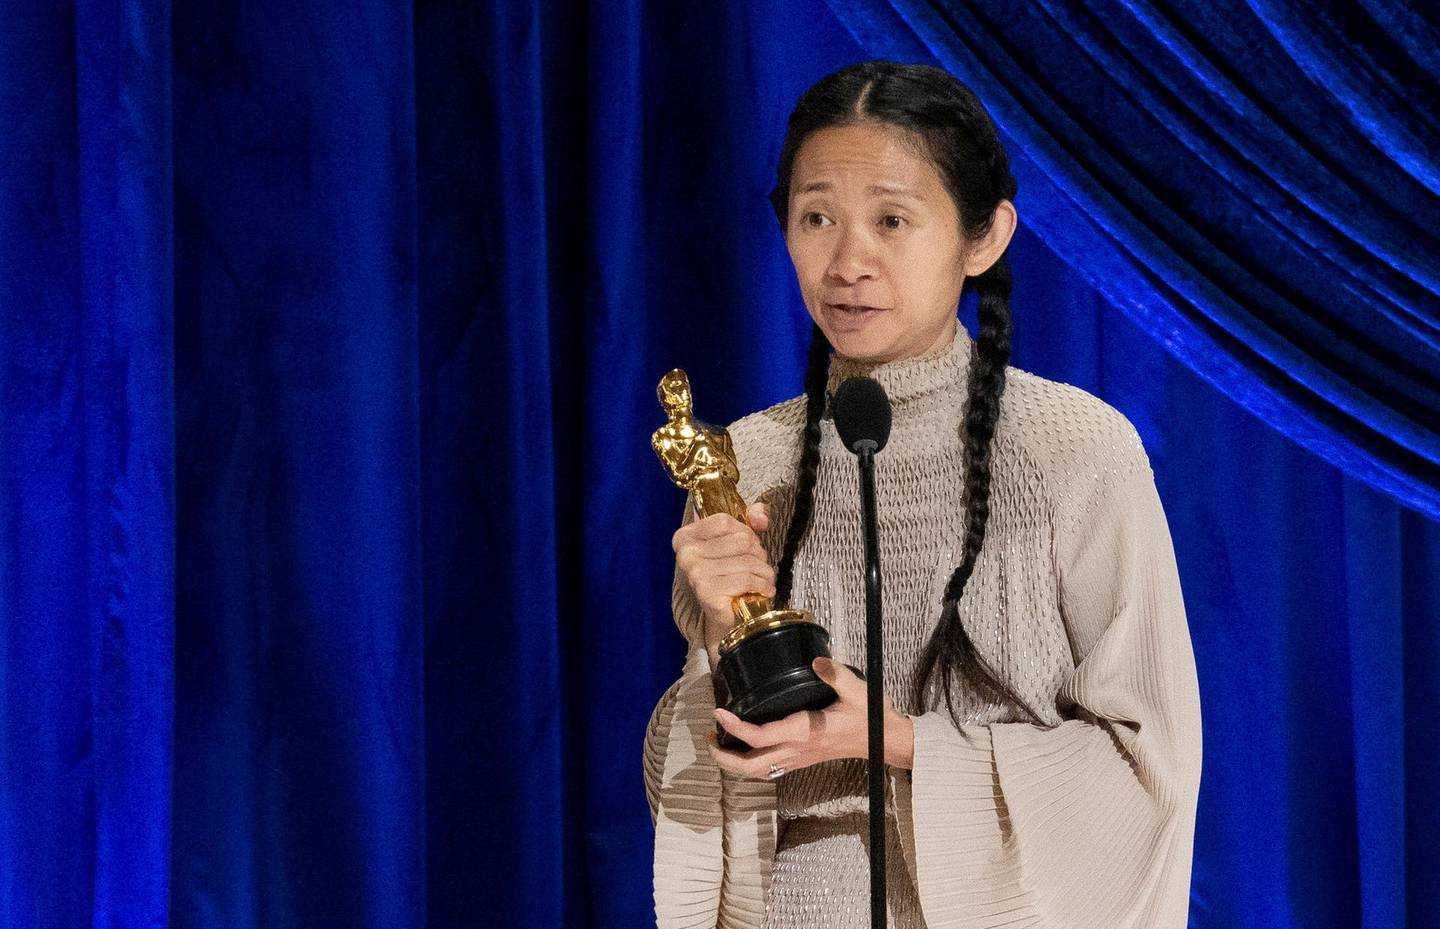 Chloe Zhao accepts the Oscar for Directing during the live ABC Telecast of The 93rd Oscars in Los Angeles, California, U.S., April 25, 2021. Todd Wawrychuk/A.M.P.A.S./Handout via REUTERS ATTENTION EDITORS. THIS IMAGE HAS BEEN SUPPLIED BY A THIRD PARTY. NO MARKETING OR ADVERTISING IS PERMITTED WITHOUT THE PRIOR CONSENT OF A.M.P.A.S AND MUST BE DISTRIBUTED AS SUCH. MANDATORY CREDIT. NO RESALES. NO ARCHIVES     TPX IMAGES OF THE DAY